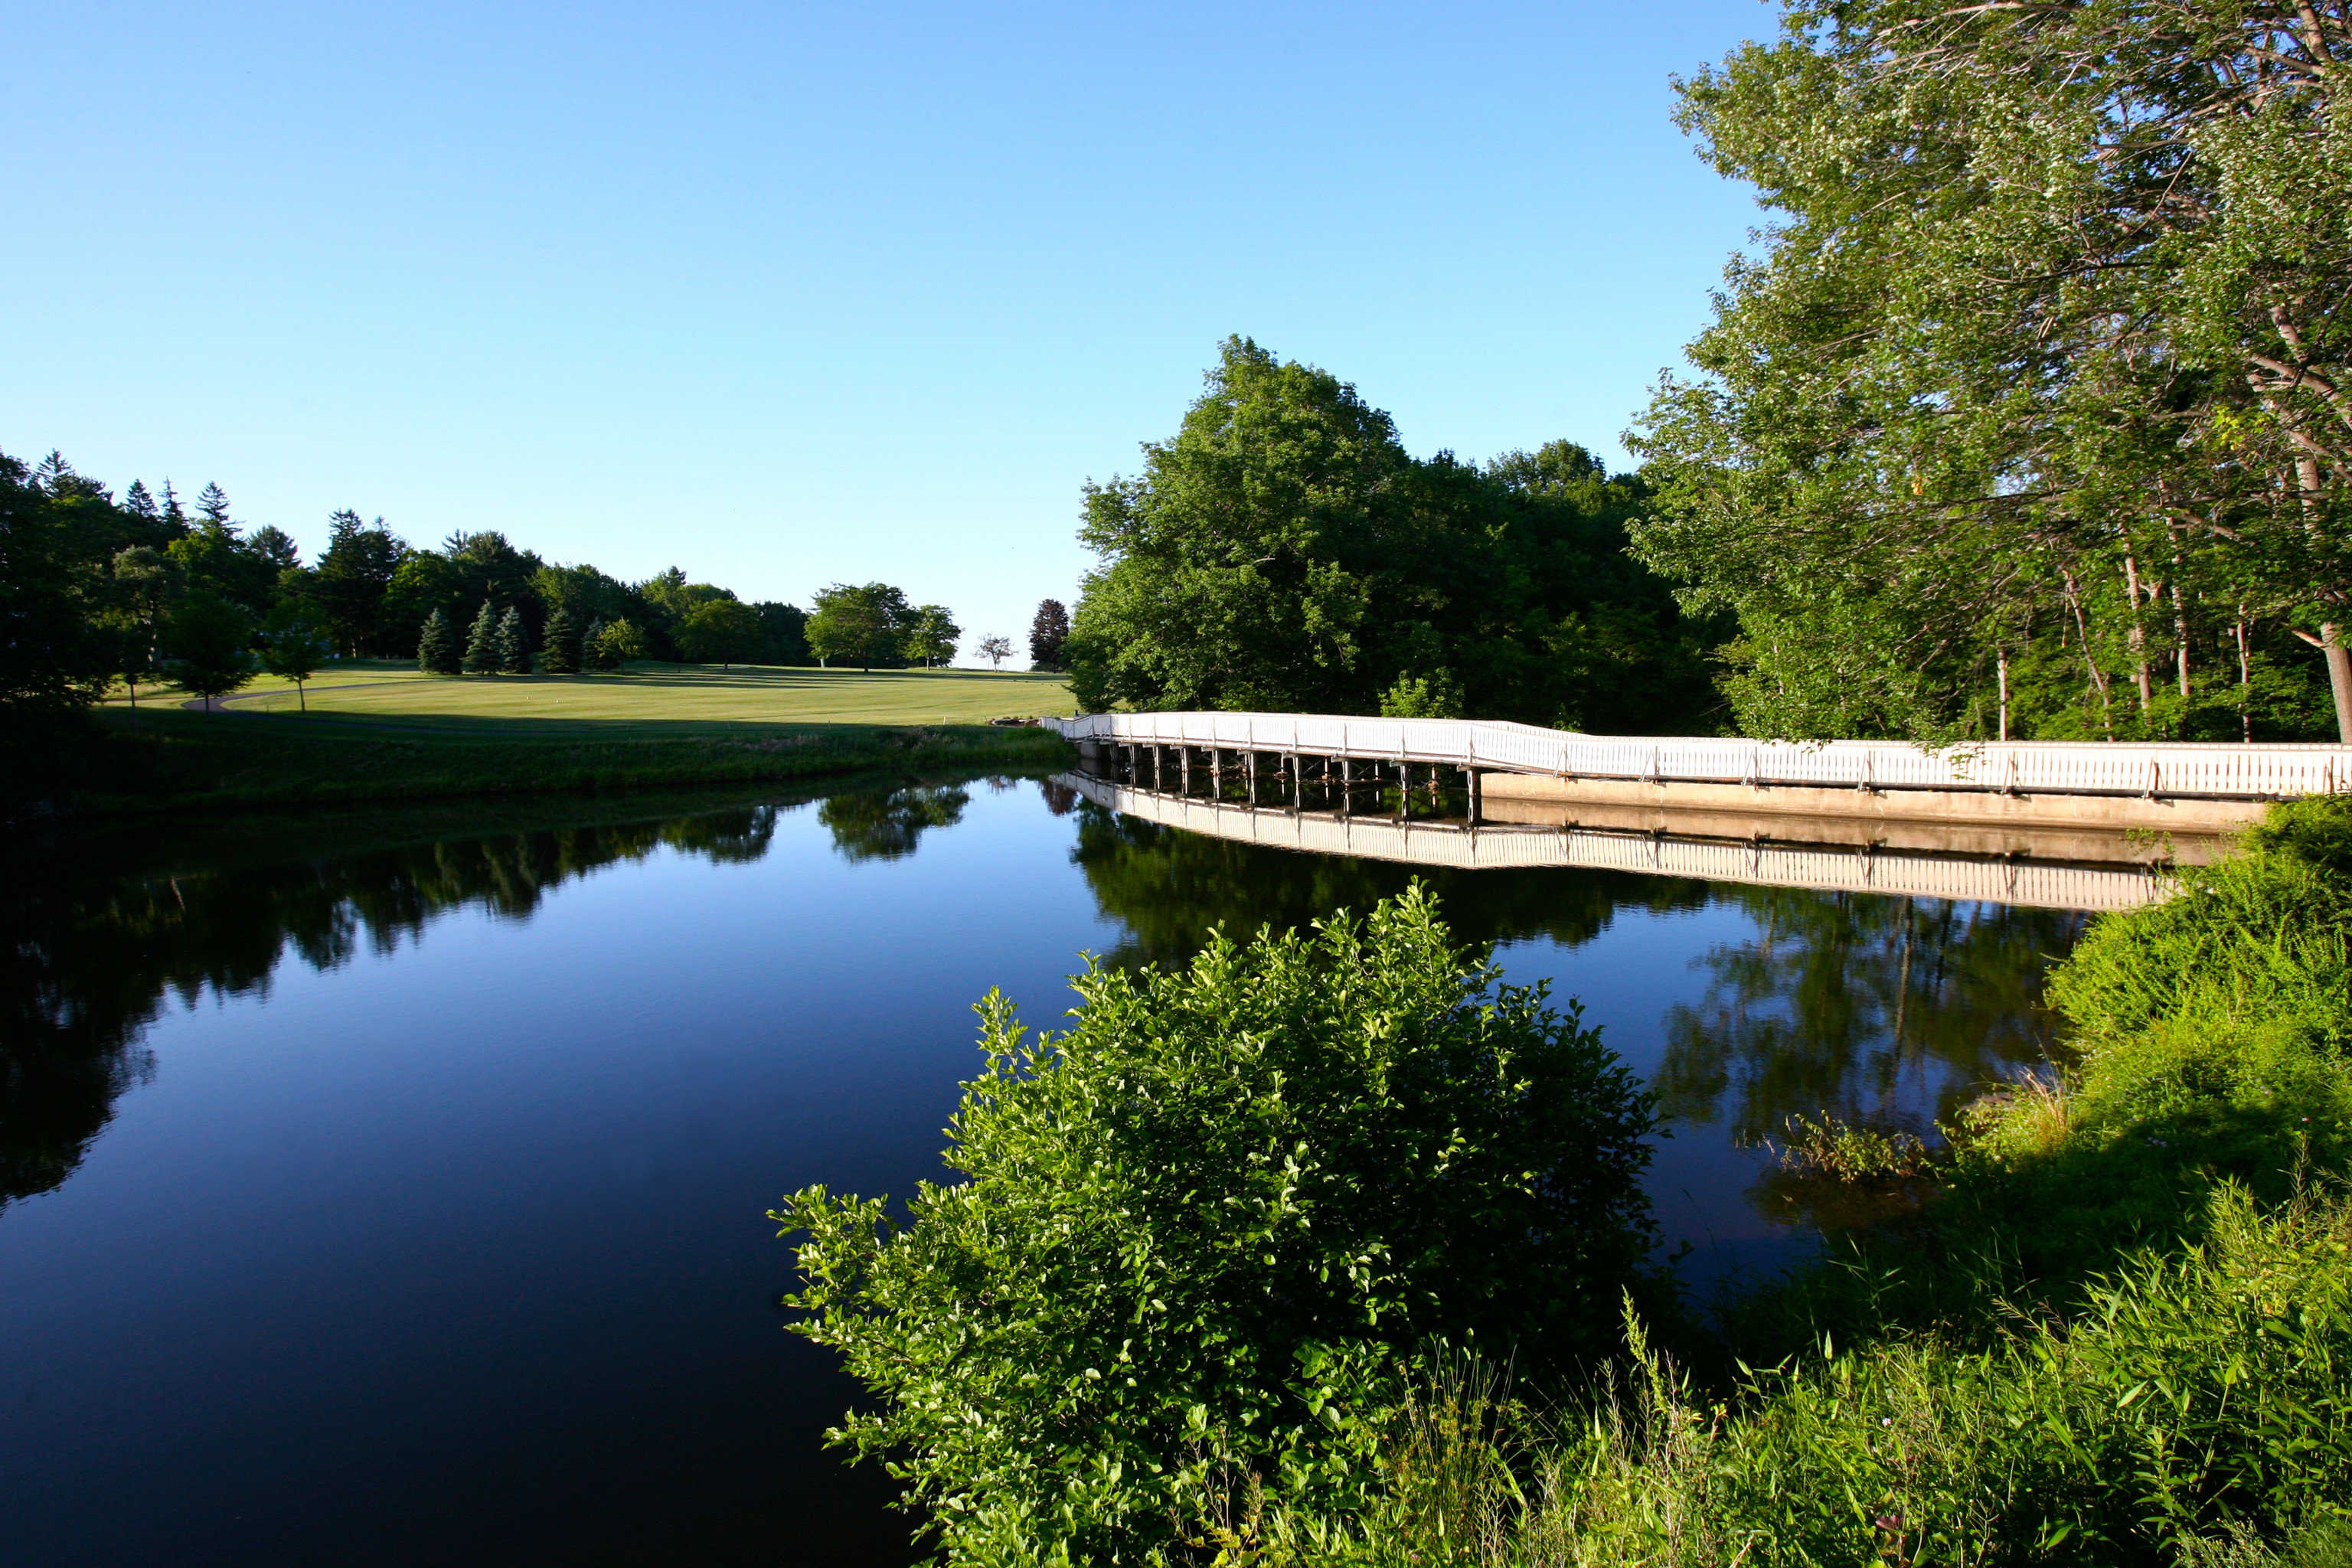 Natural wonders Nature Outdoor Activities Outdoors Scenic views tree water sky River Lake Forest reservoir reflecting pool bridge pond surrounded waterway traveling wooded bushes